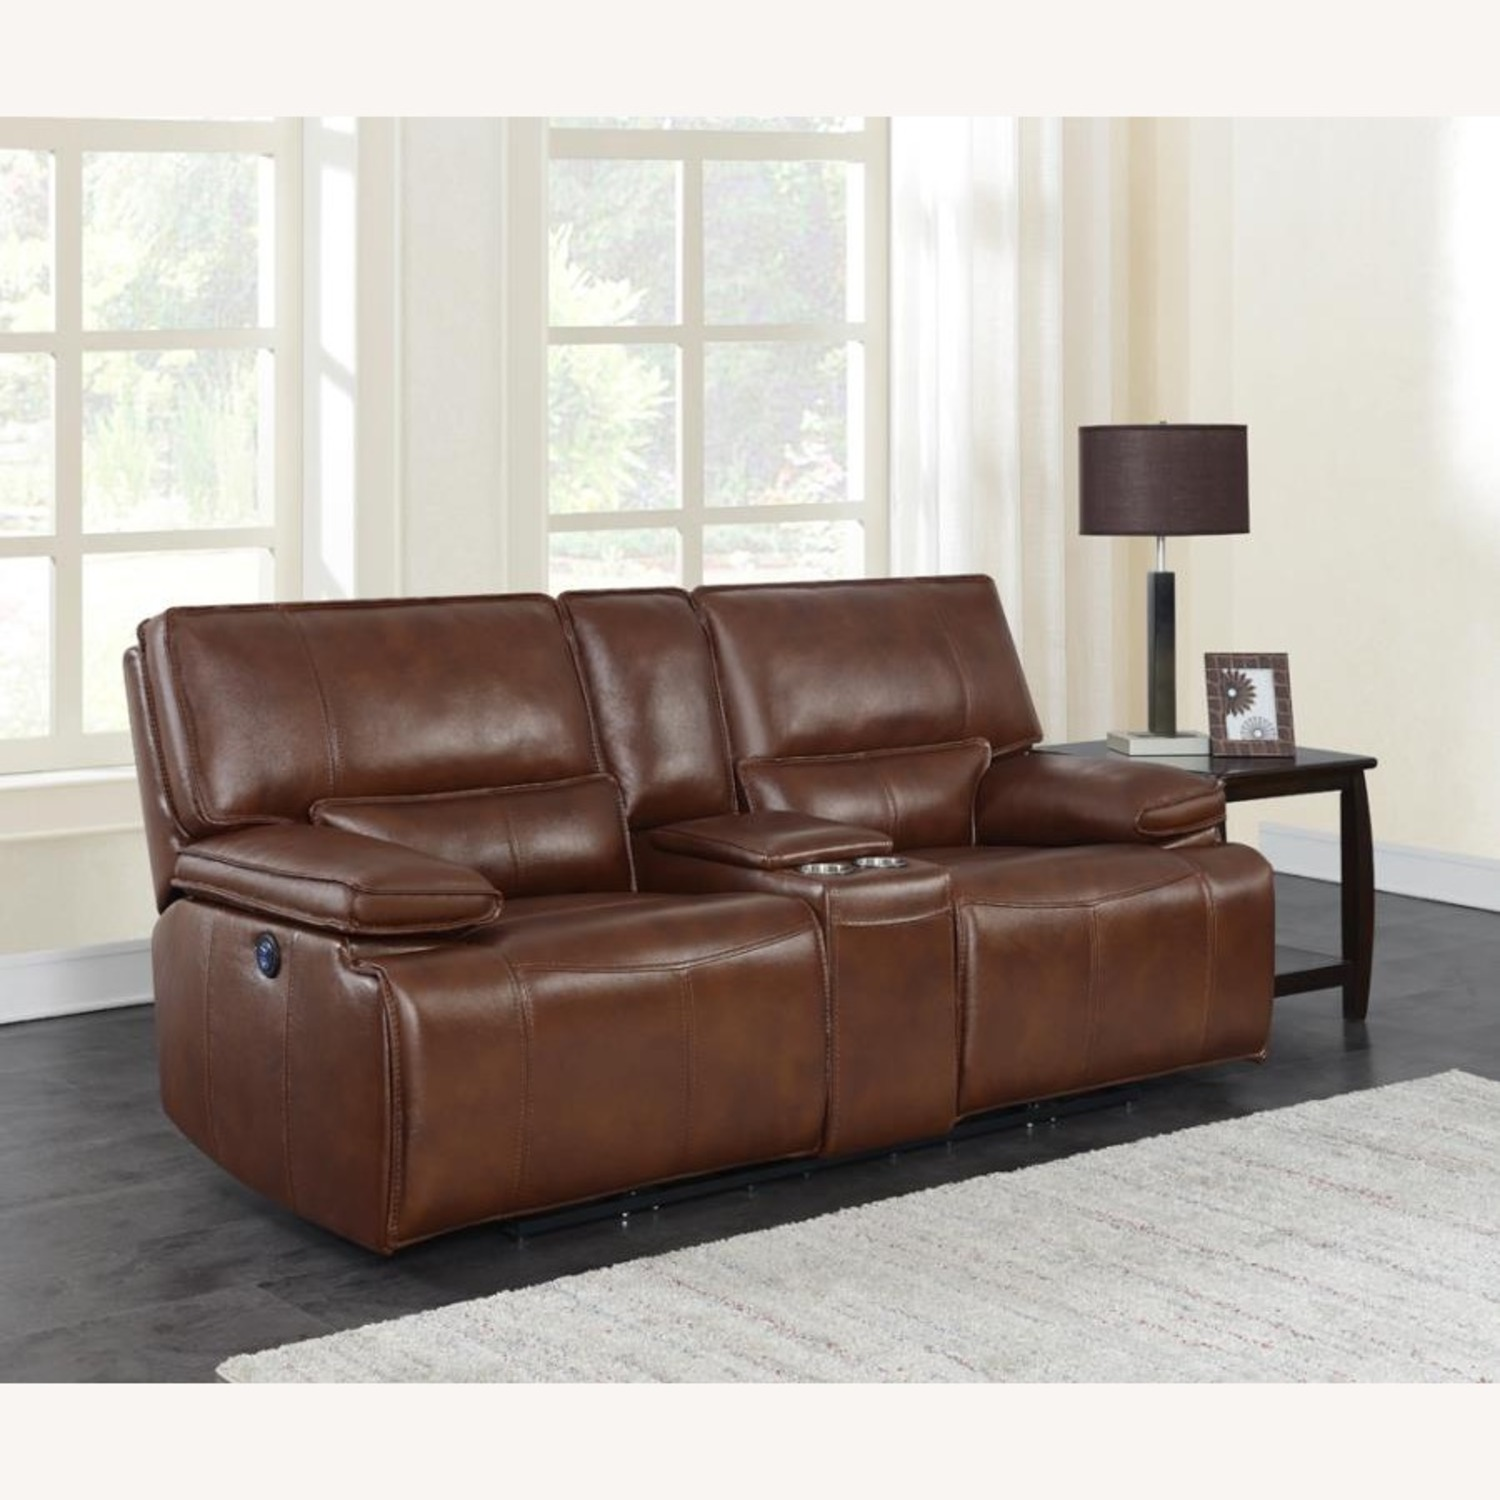 Power Loveseat In Saddle Brown W/ Console - image-8